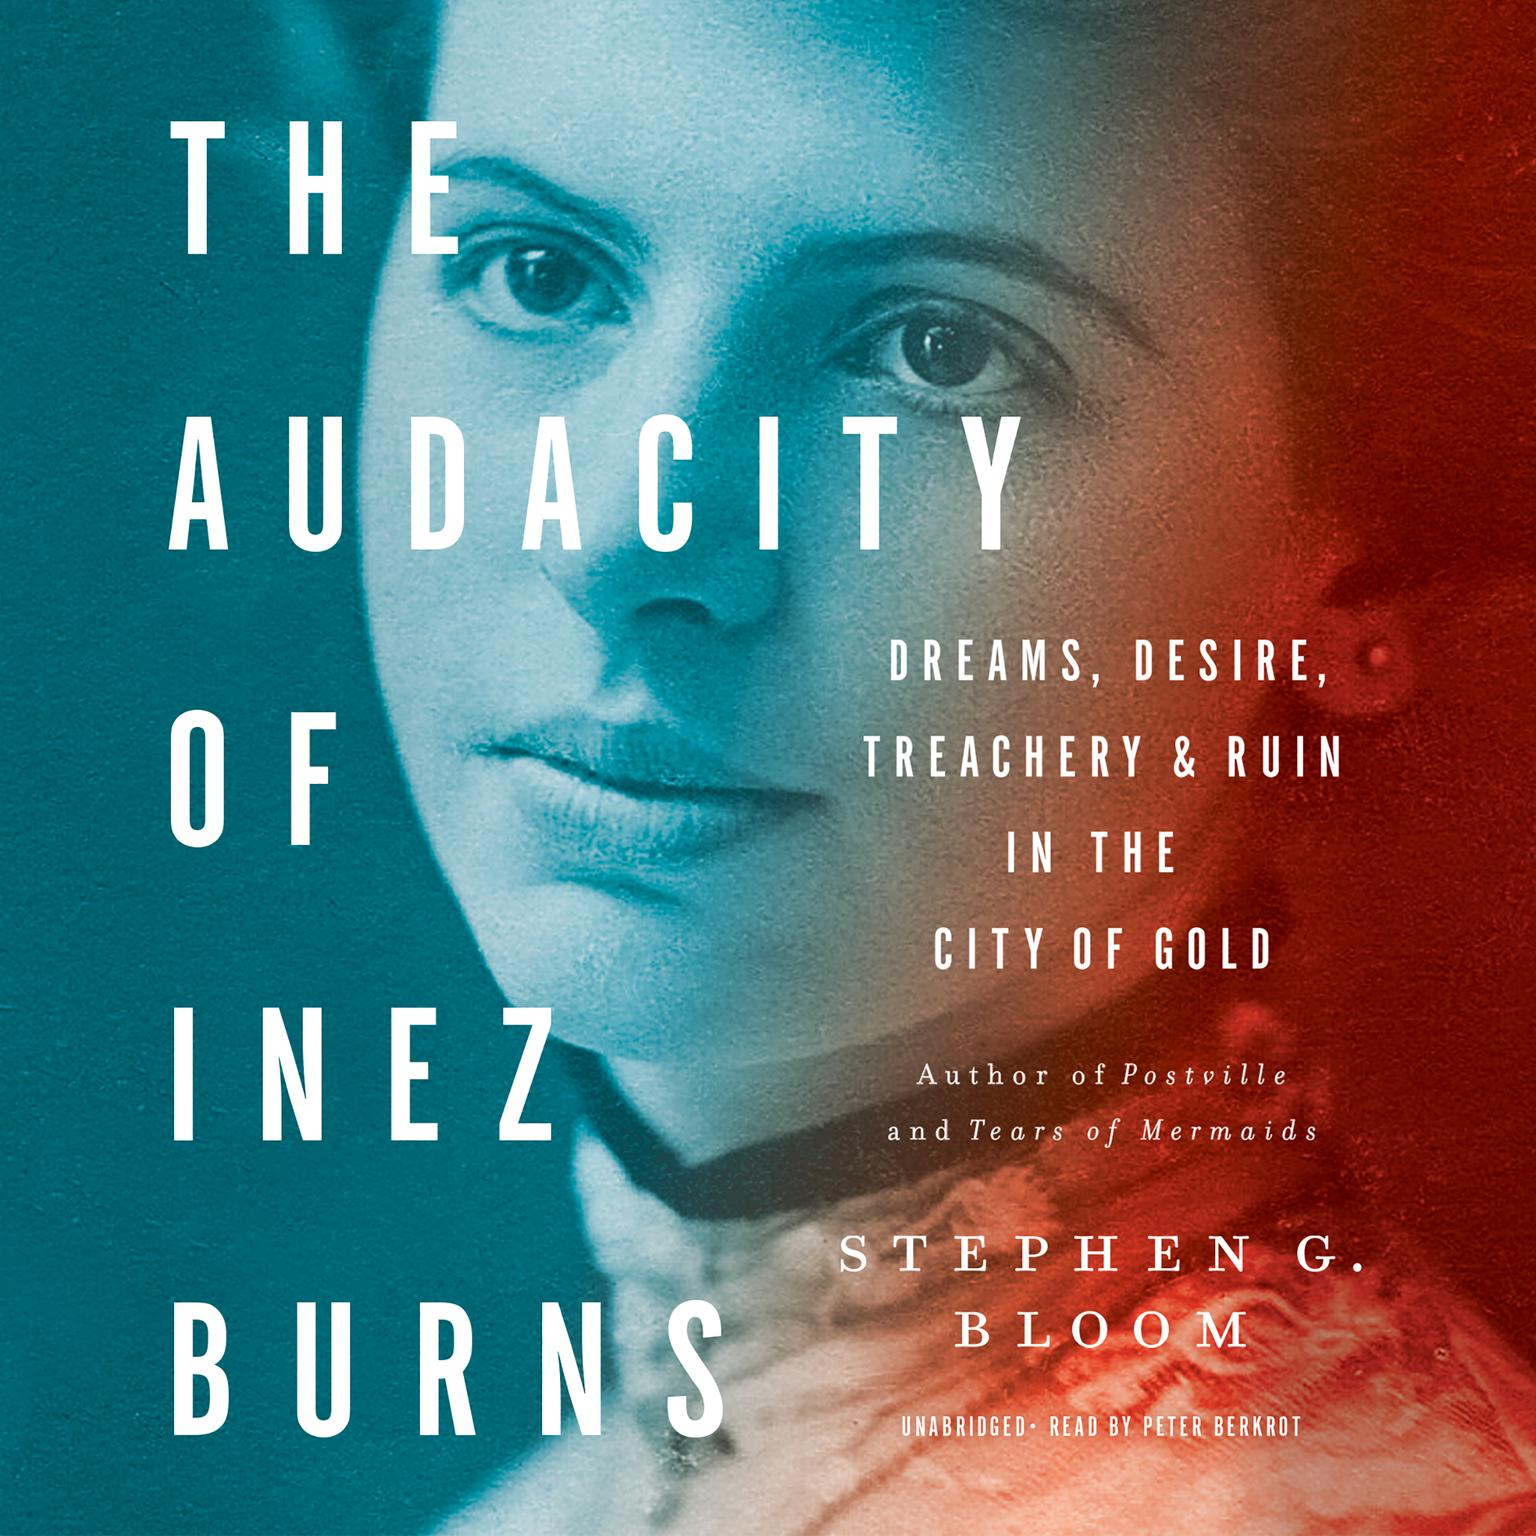 The Audacity of Inez Burns: Dreams, Desire, Treachery, and Ruin in the City of Gold Audiobook, by Stephen G. Bloom